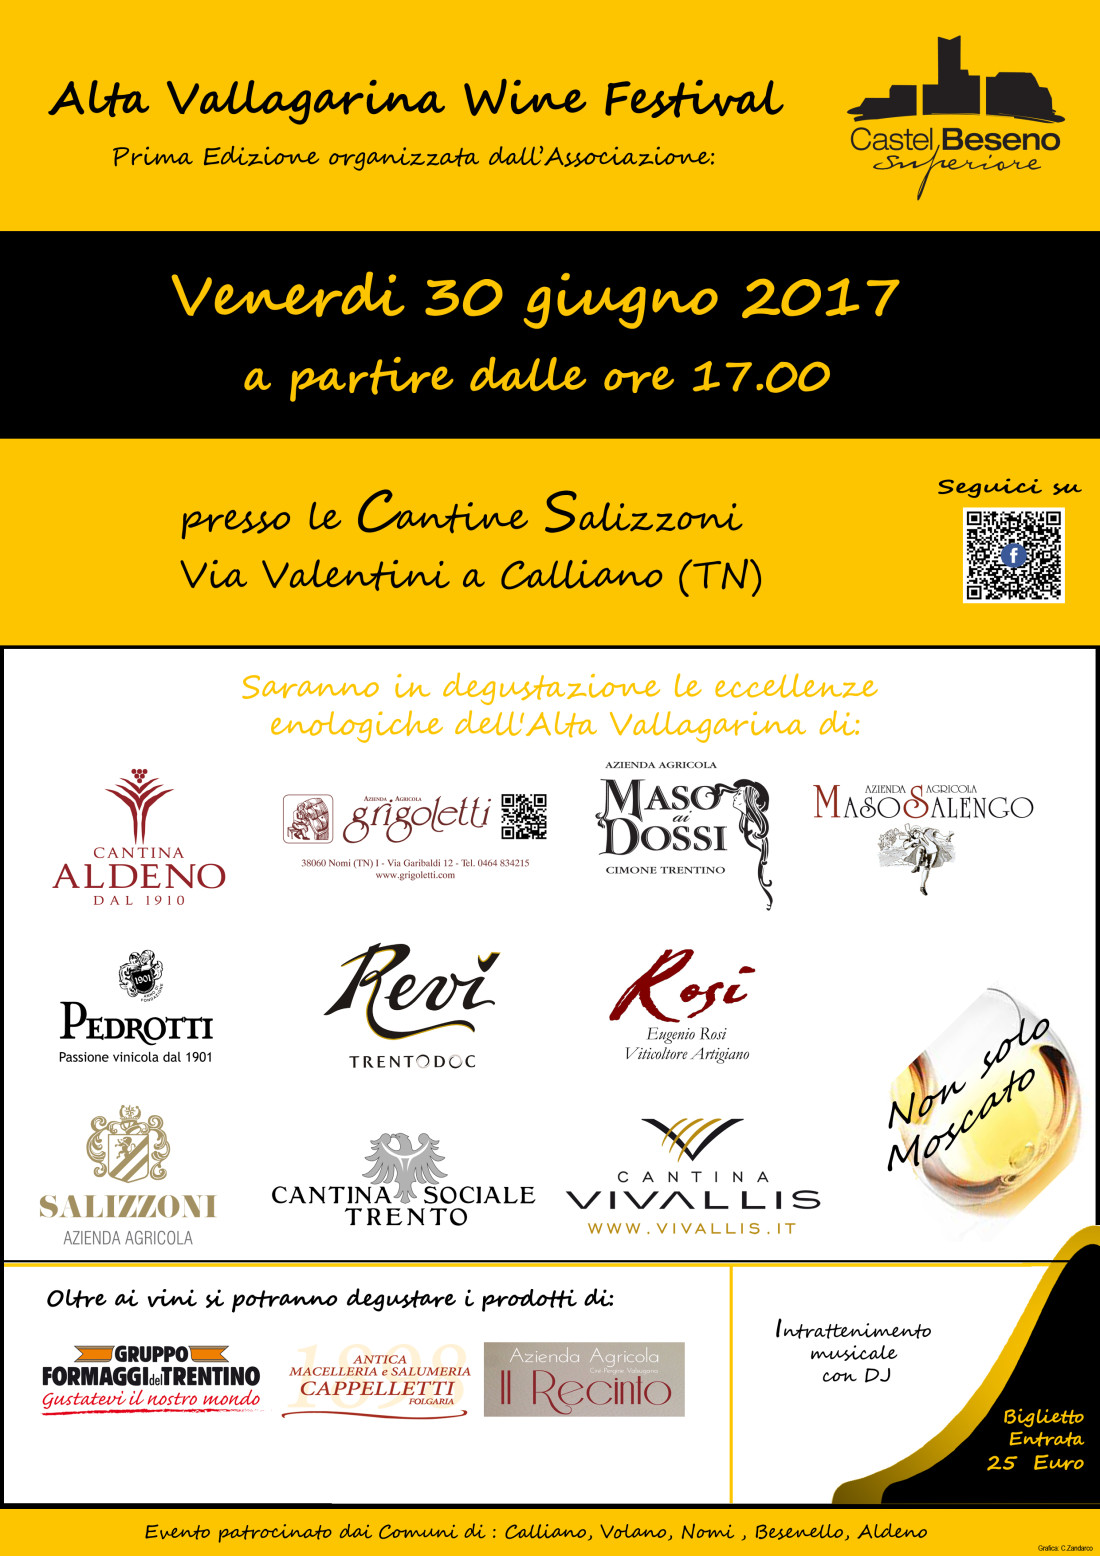 Wine Festival Alta Vallagarina 2017 (003)